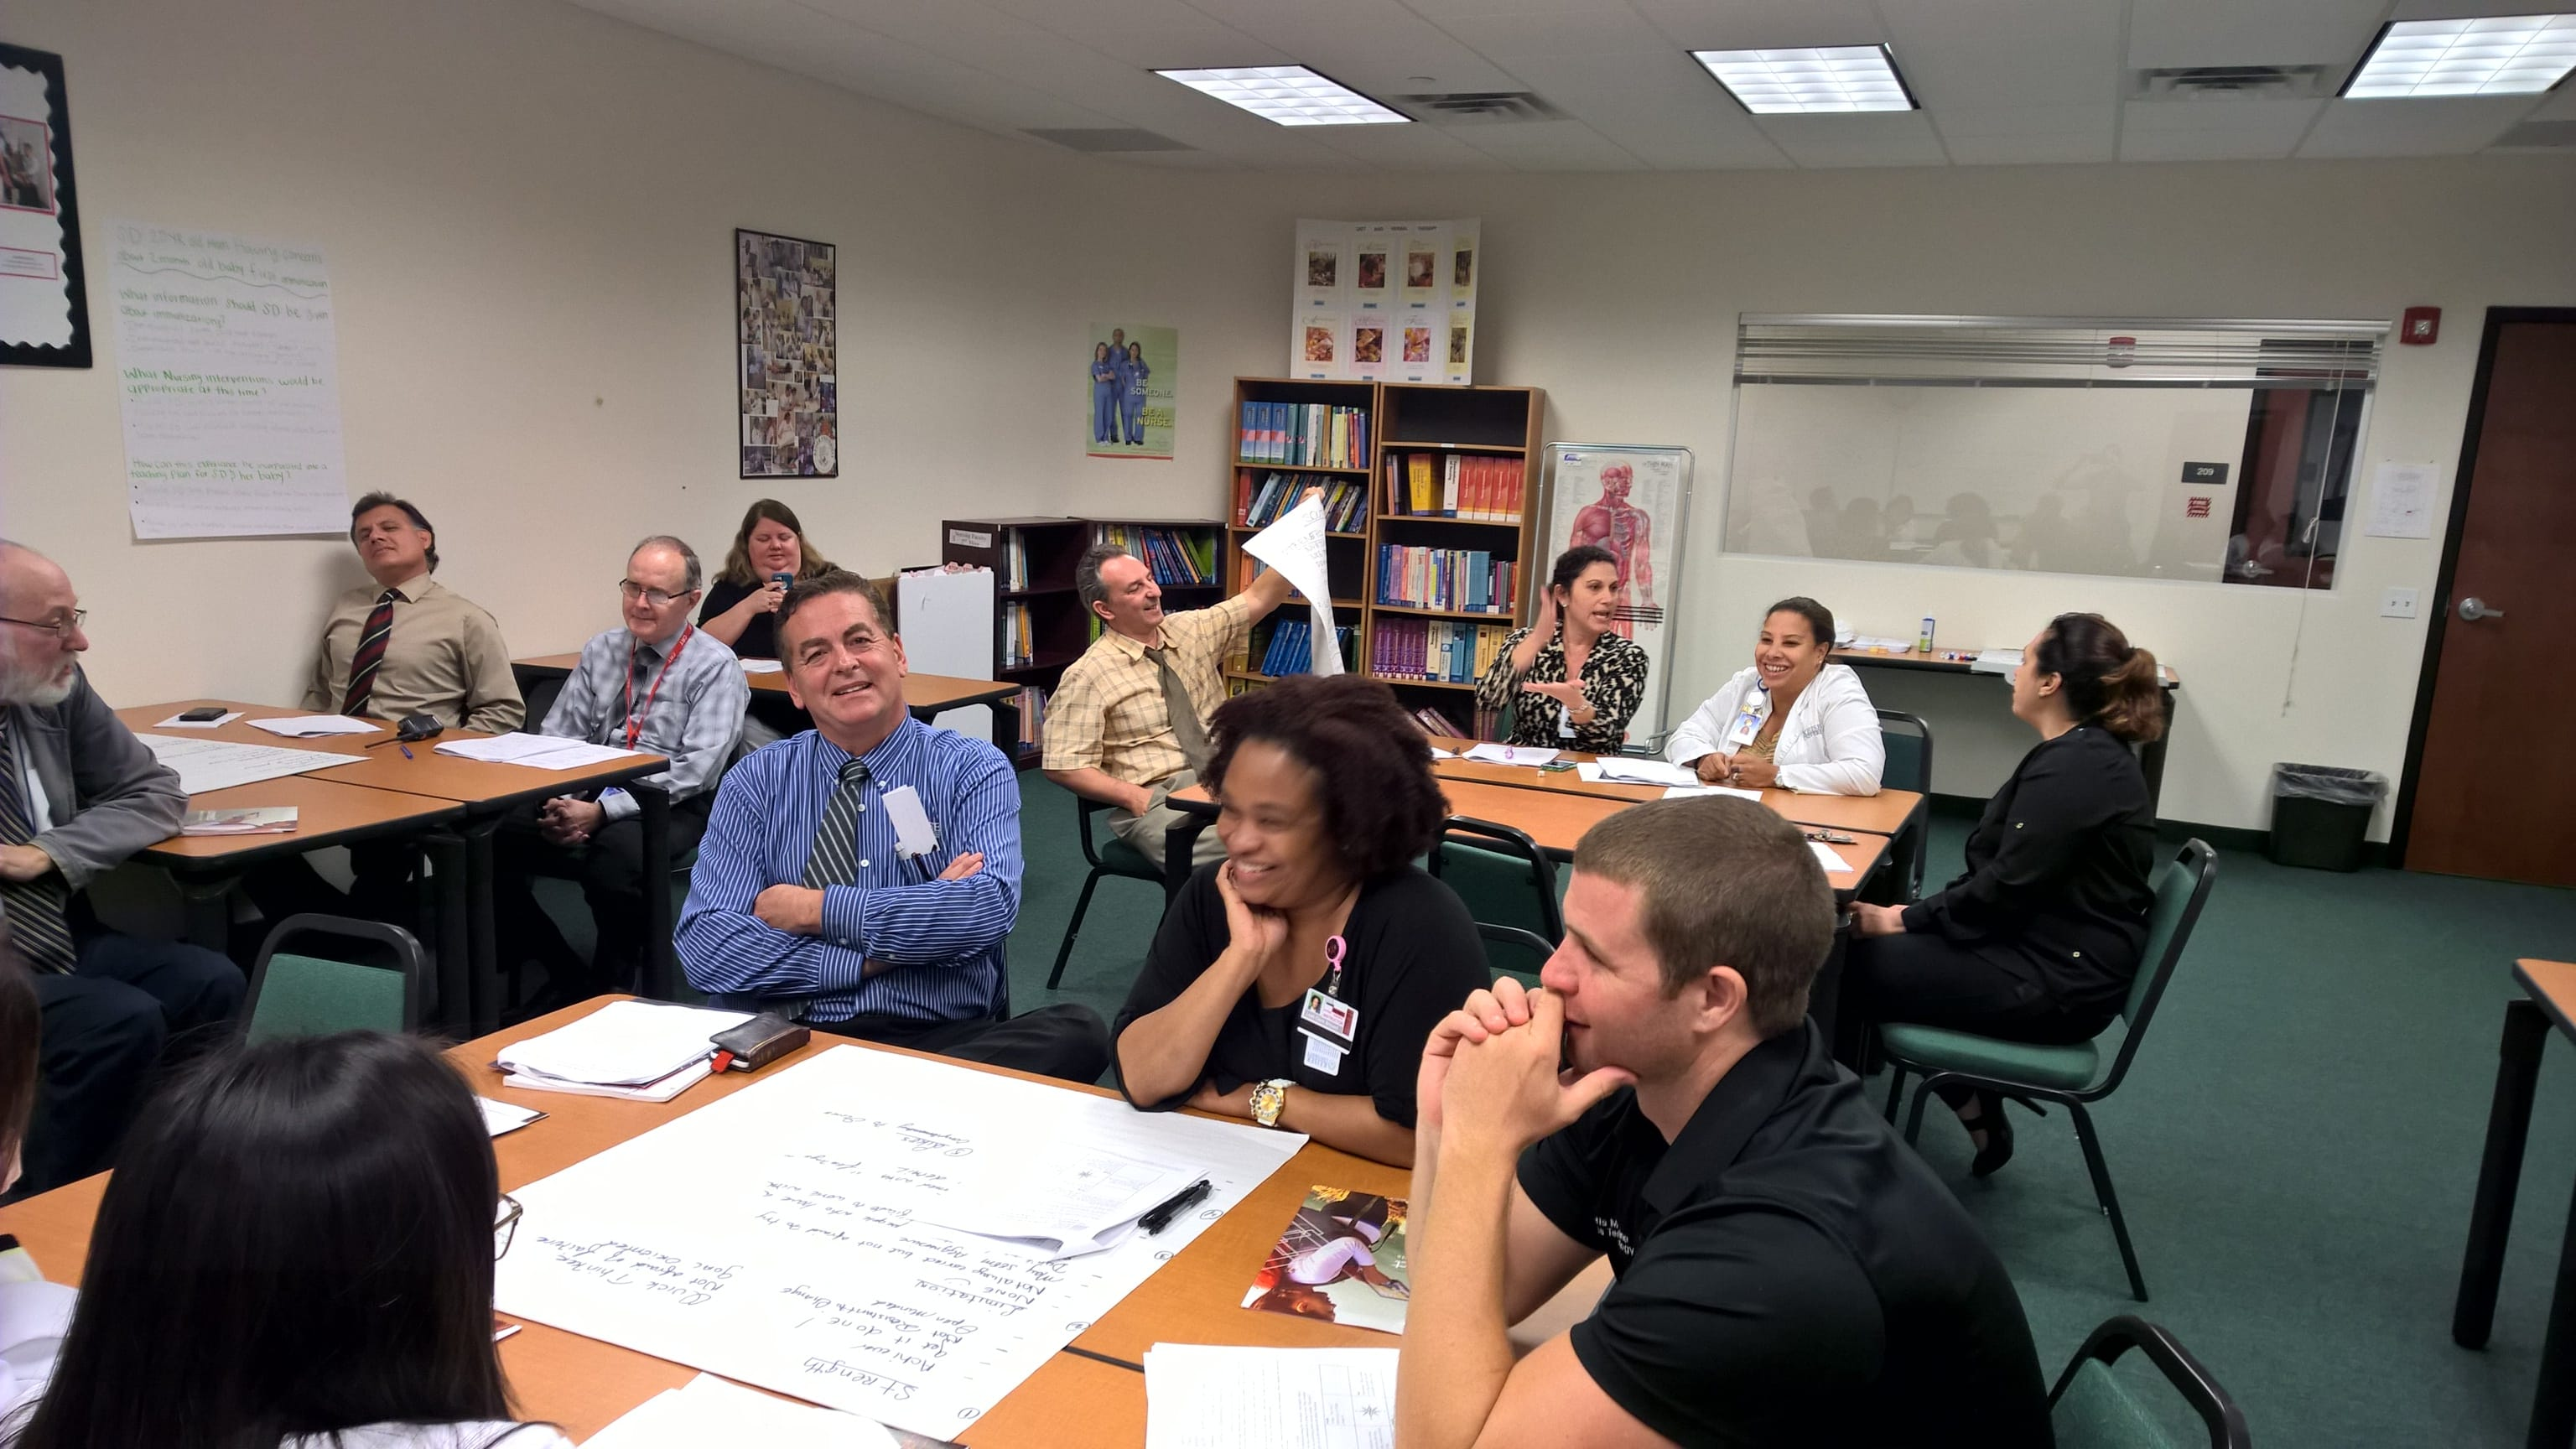 Miami's Teaching and Learning Center Partners with the Writing Studio for Faculty Enrichment